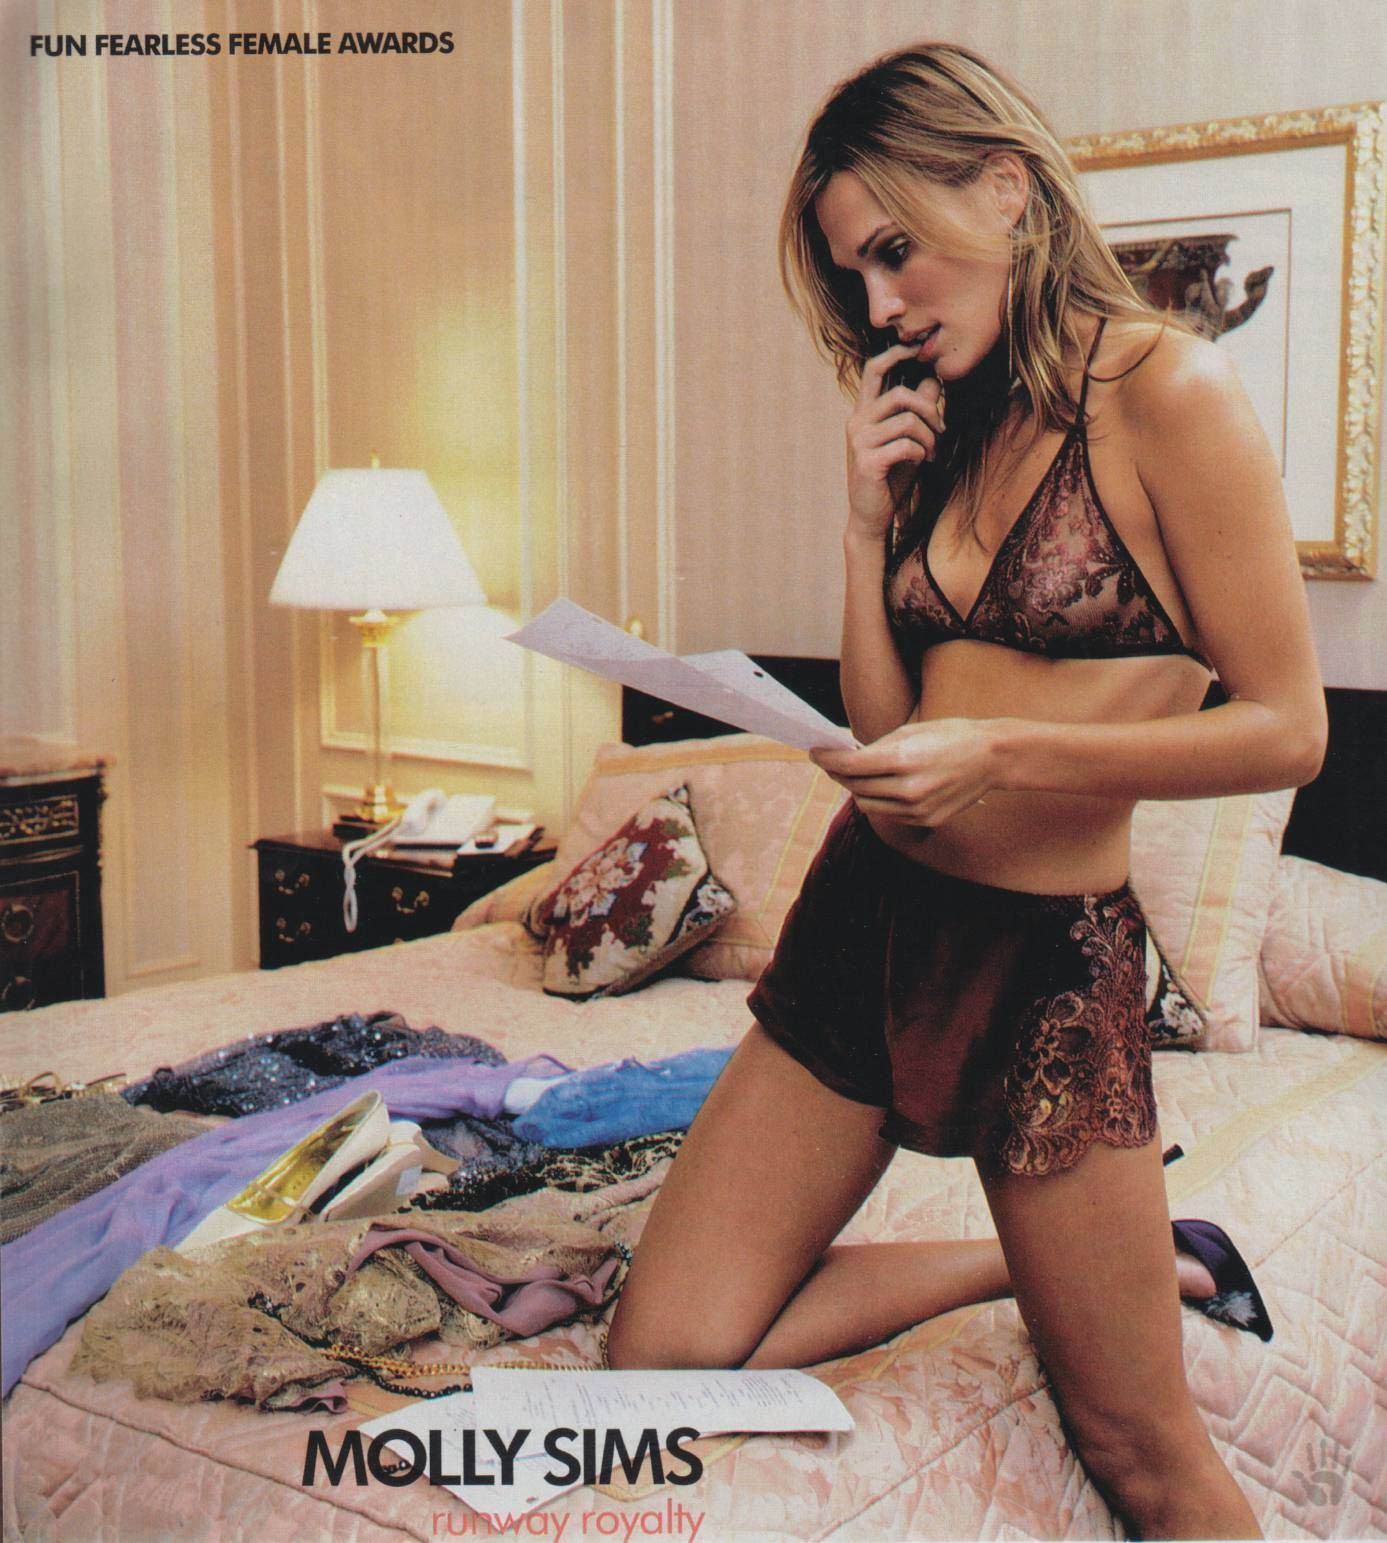 Molly sims nude free